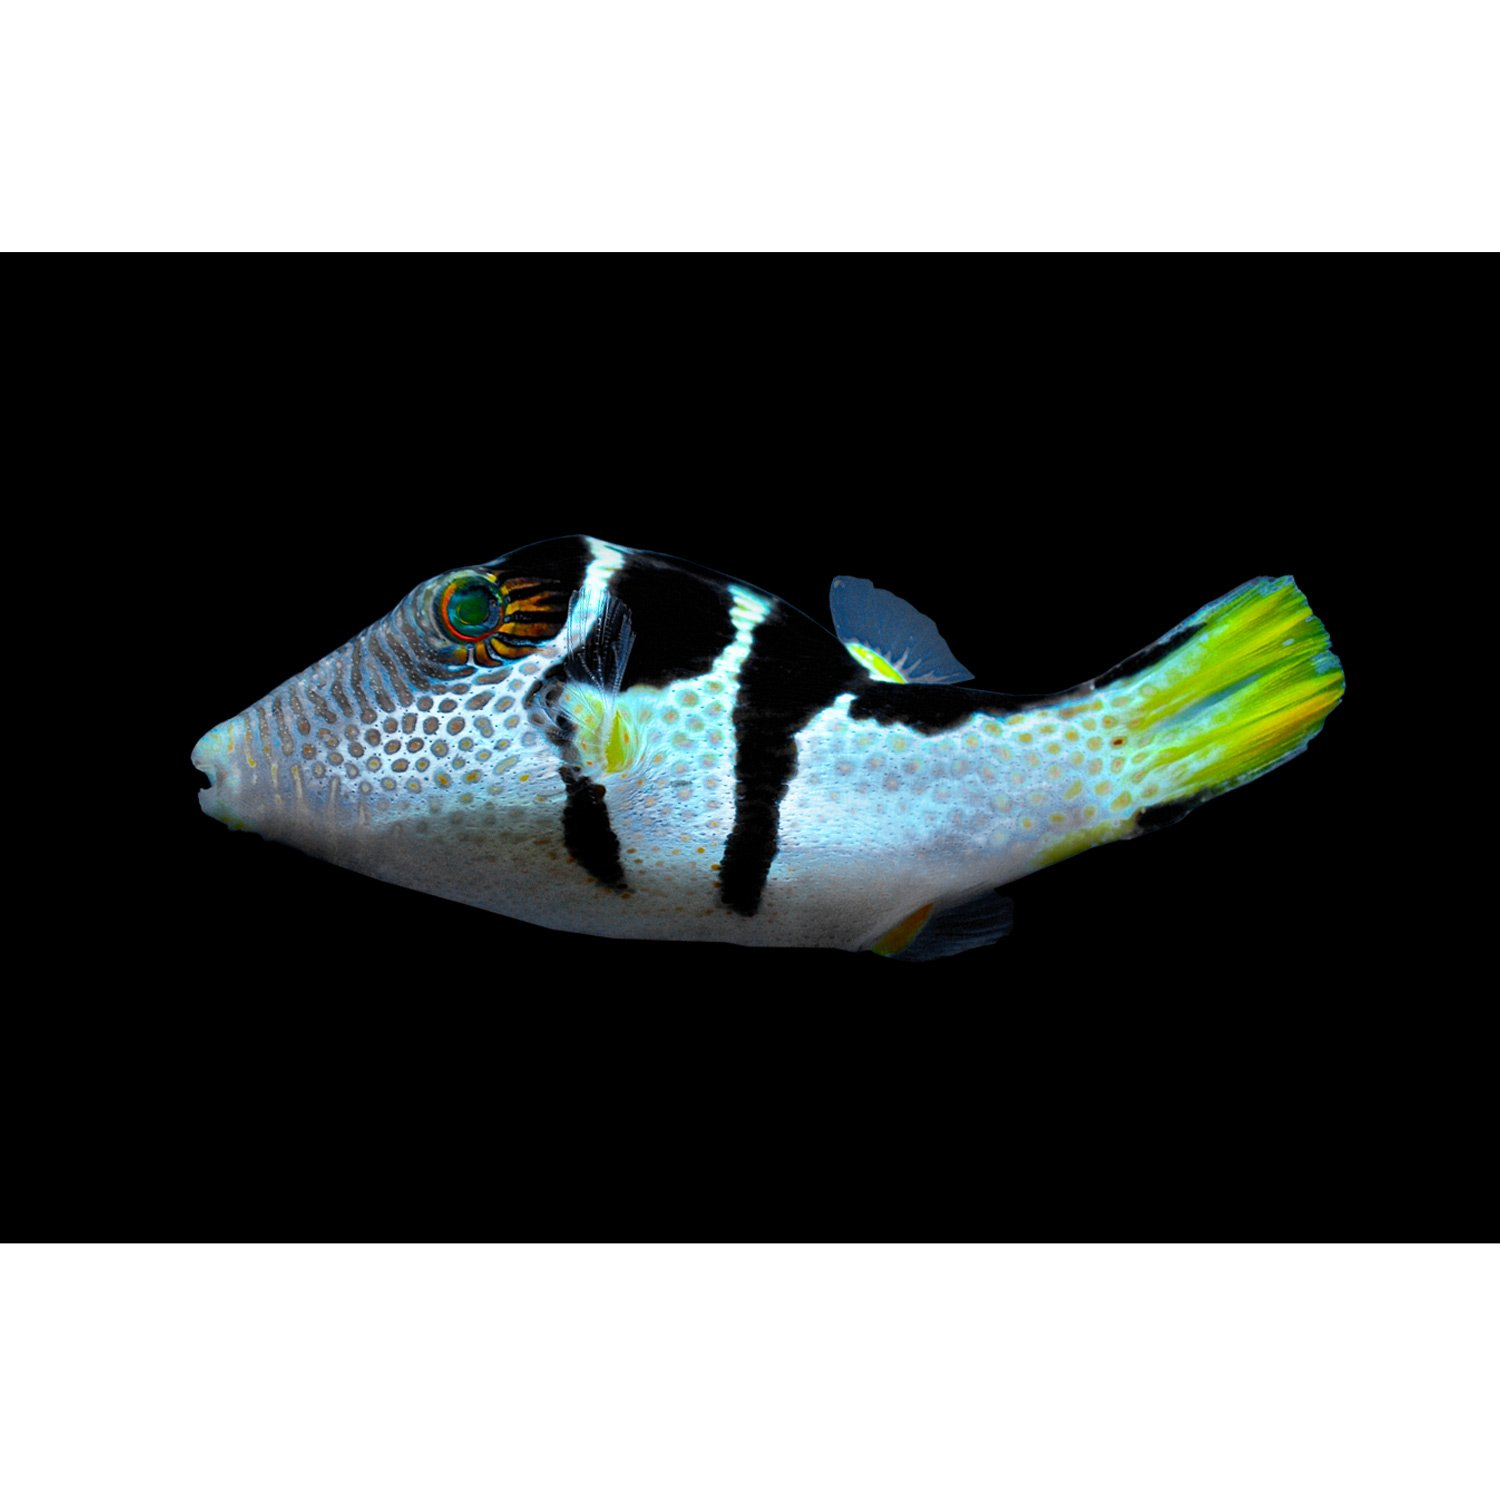 Valentini puffer petco for Puffer fish price